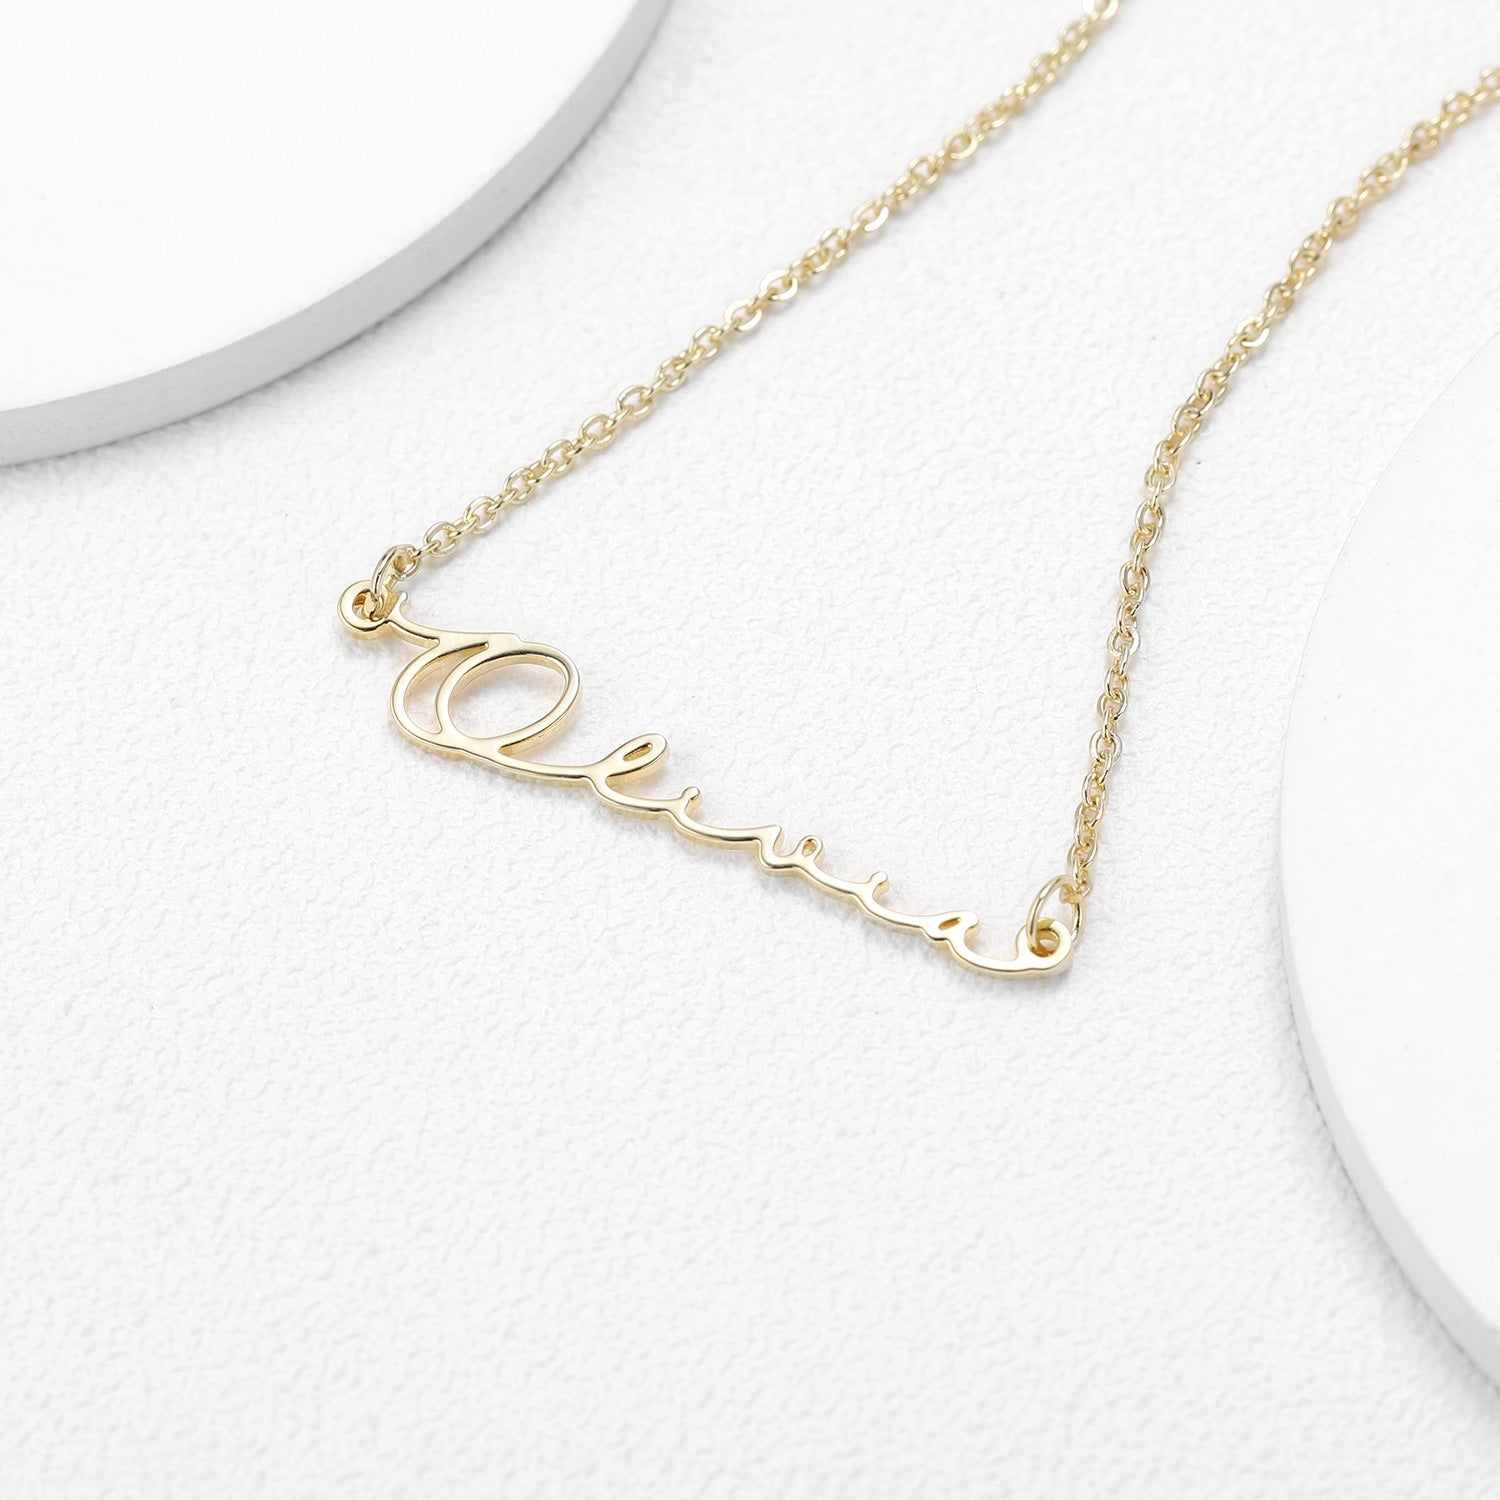 Sterling Silver Handmade Name Necklace